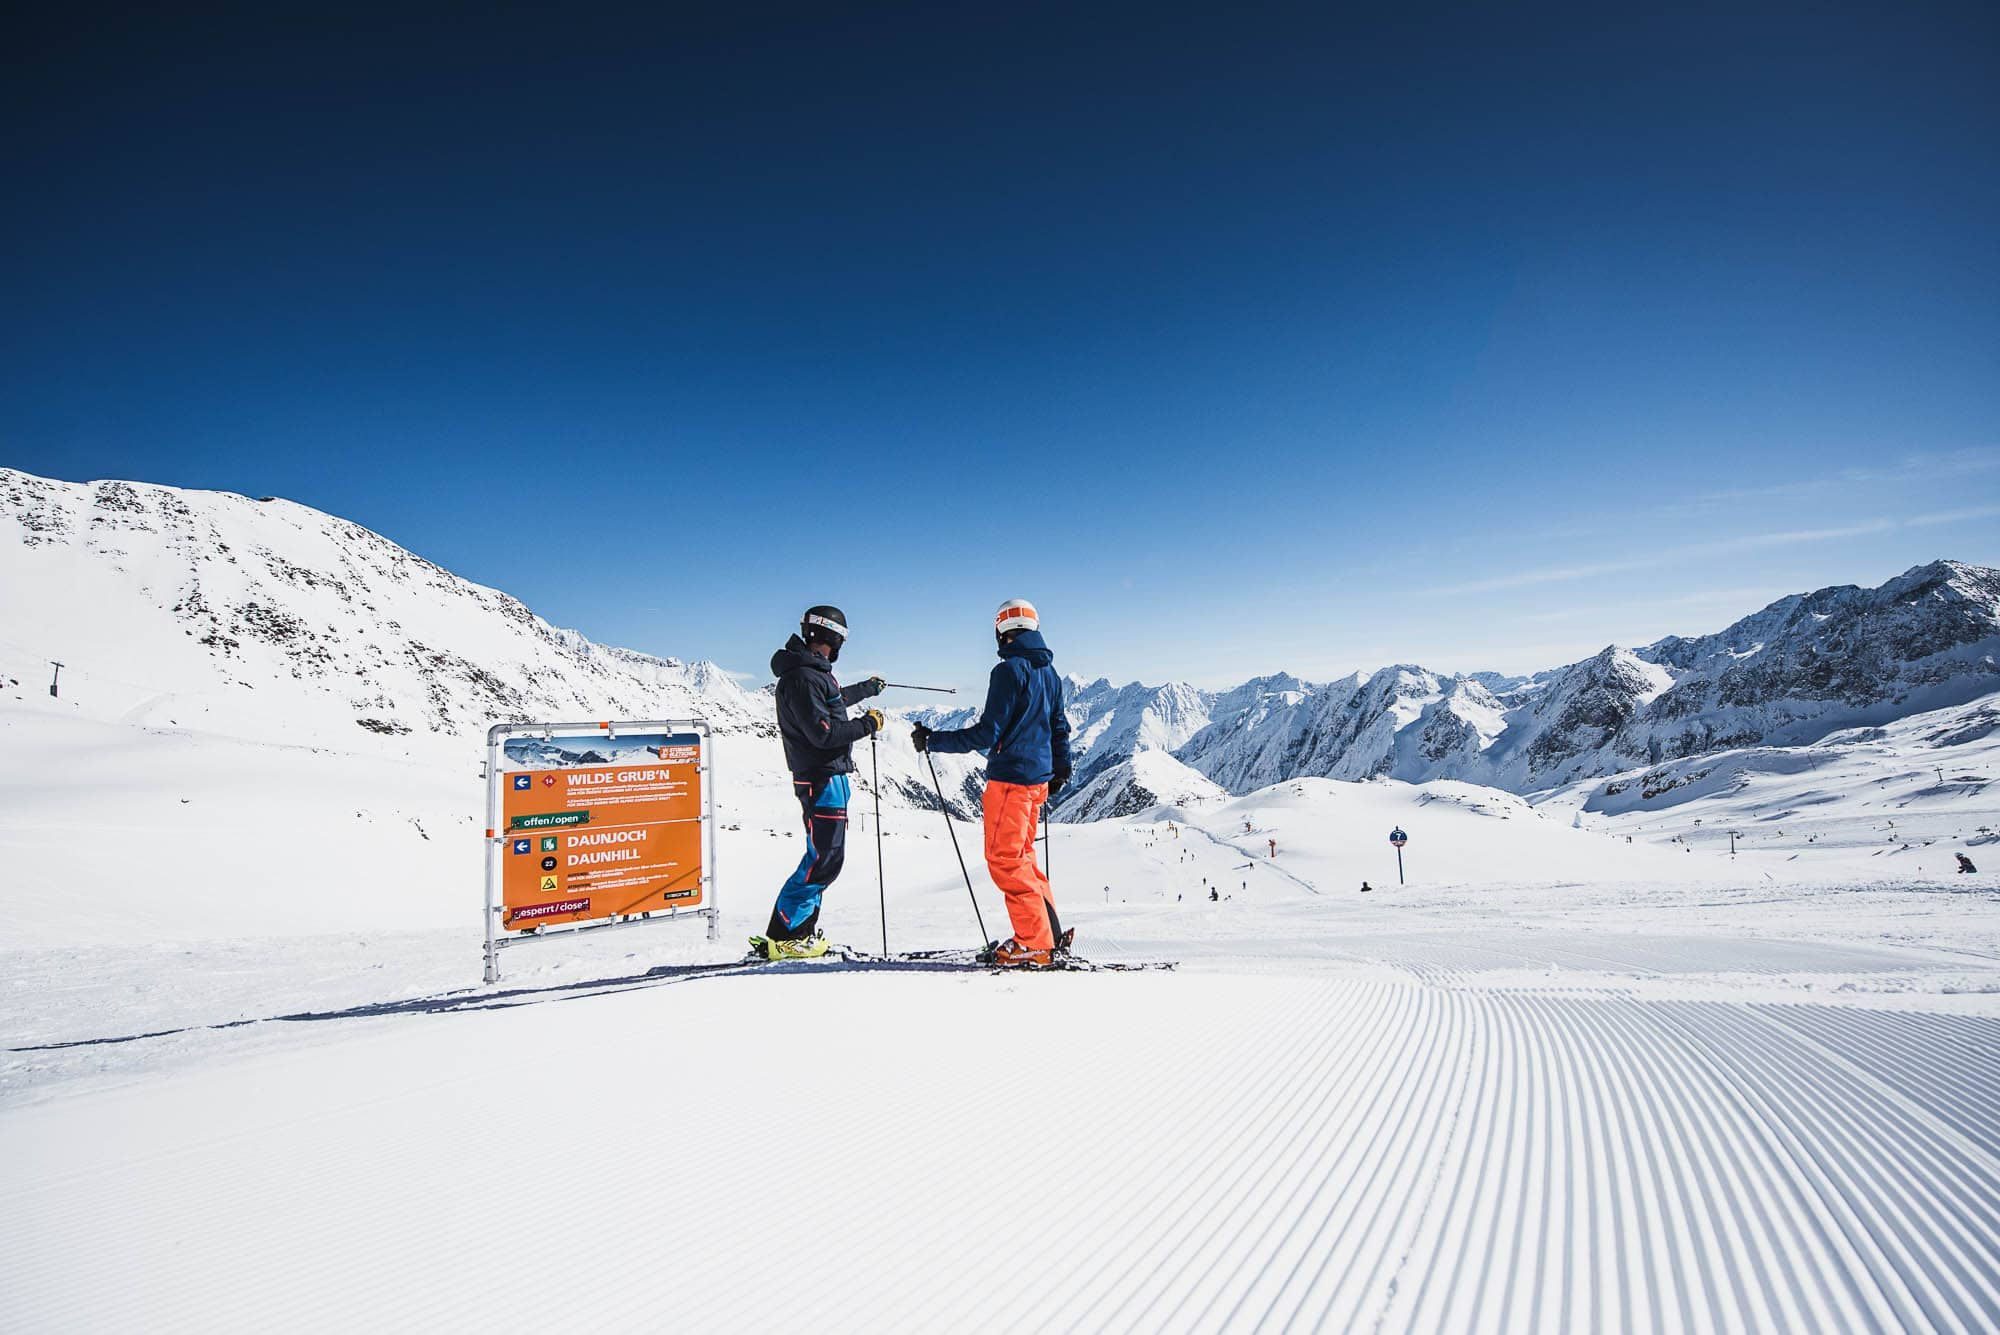 2 skiers standing on the piste